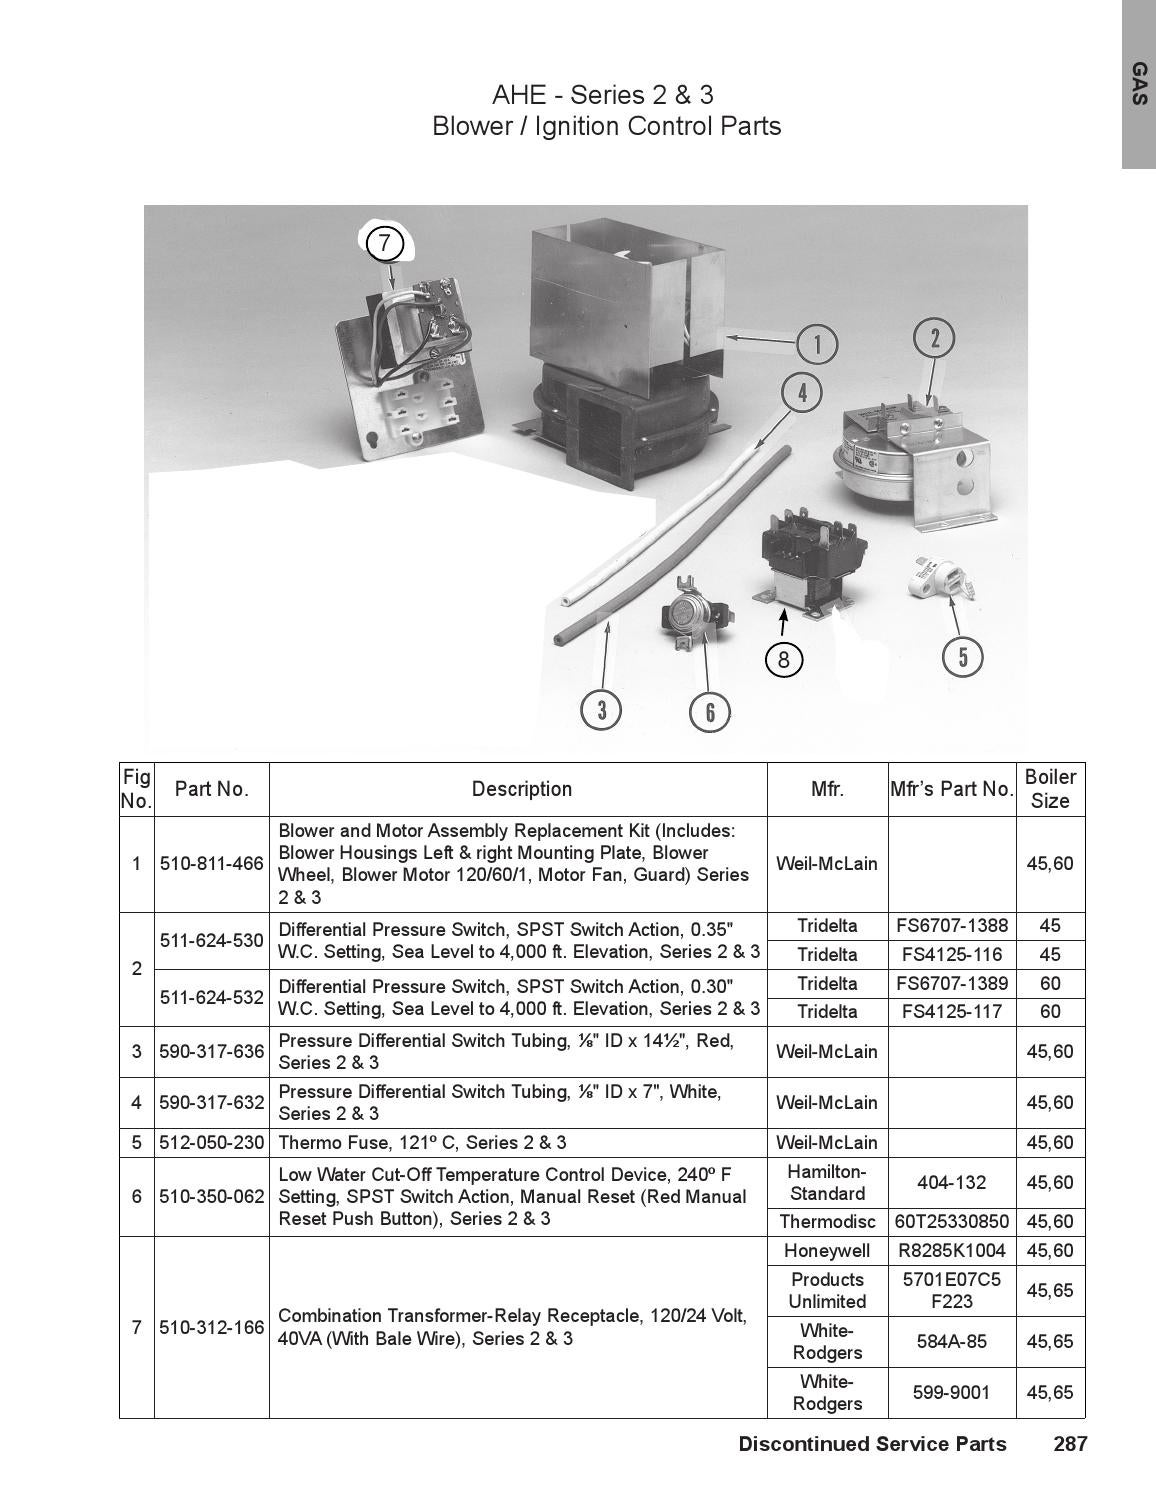 2015 Service Parts Catalog By Weil Mclain Issuu